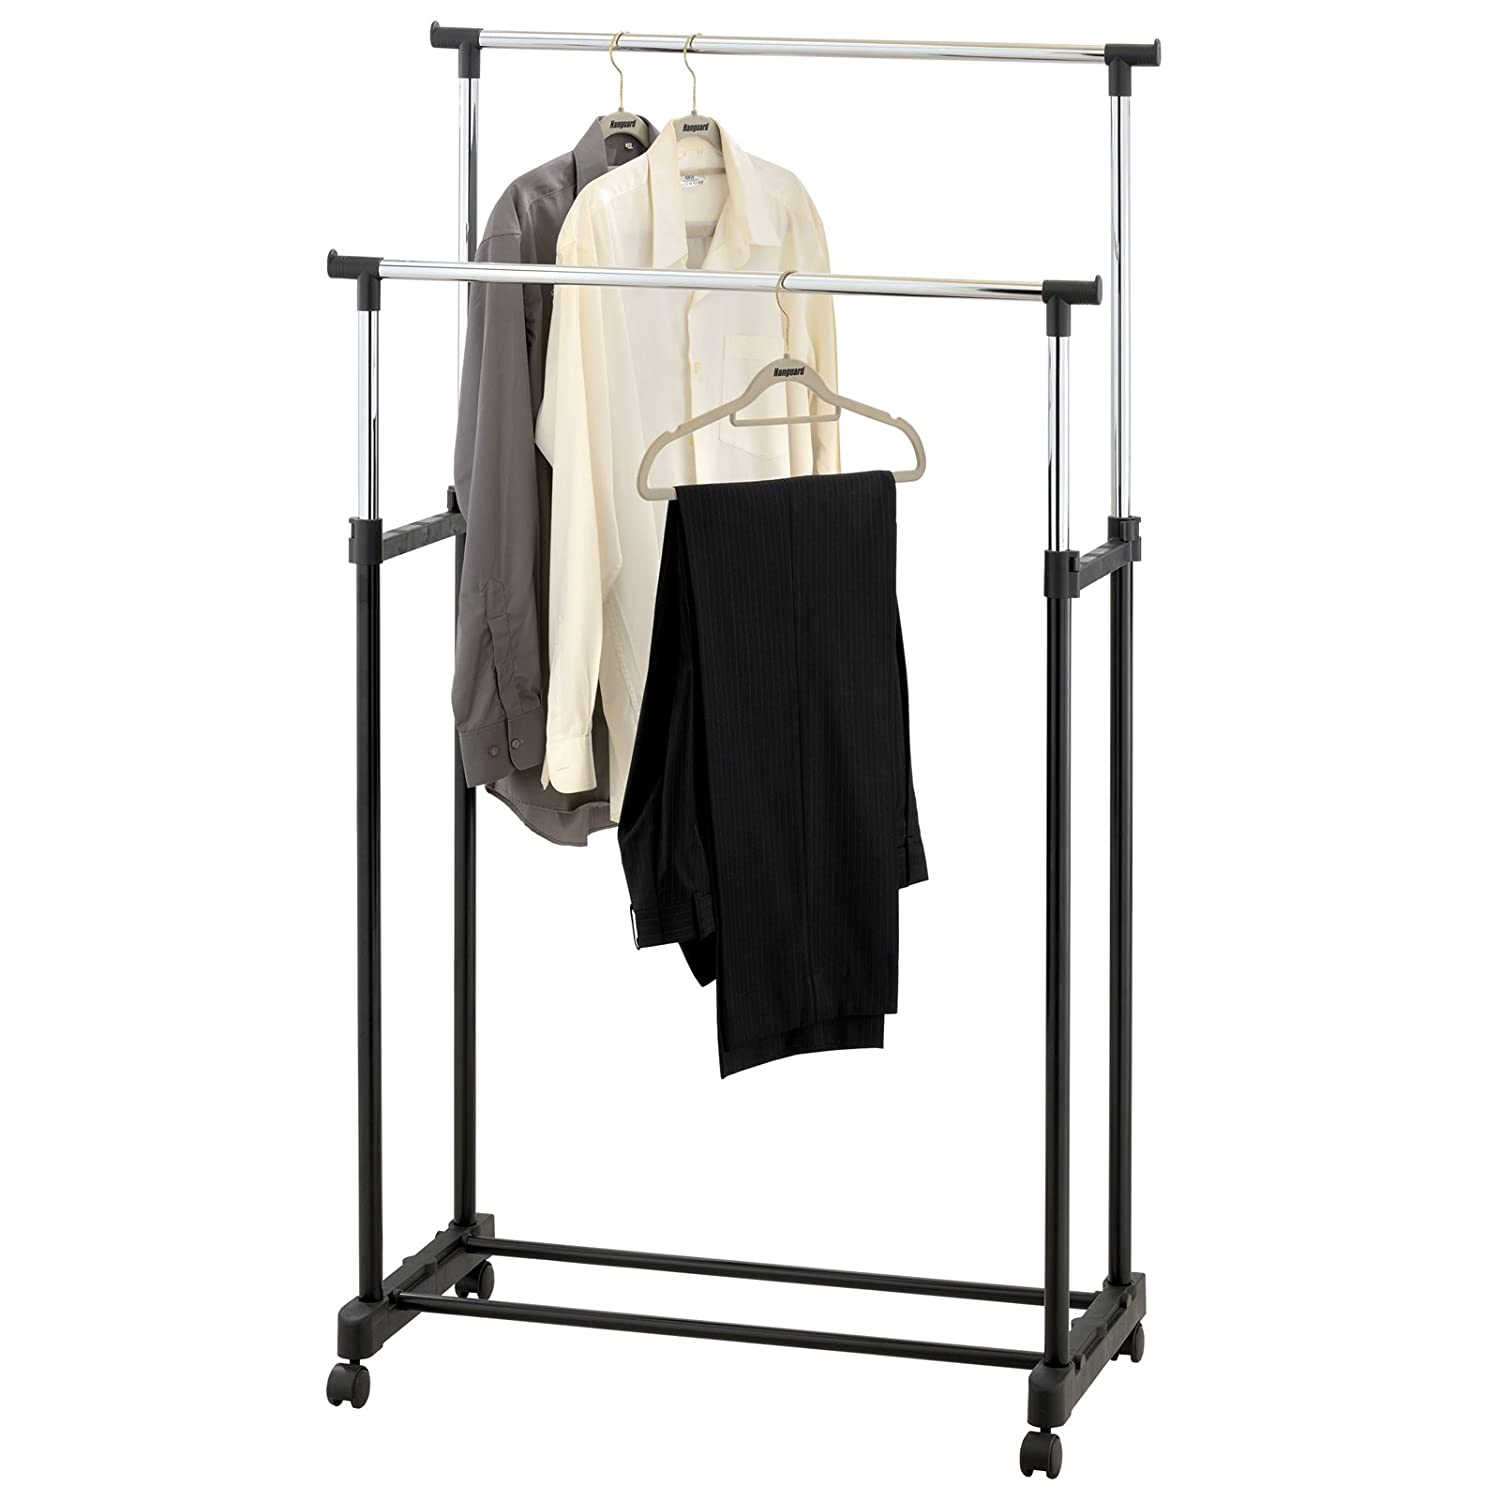 AMOS Double Adjustable Height Garment Clothes Dress Coats Jackets Hanging Rail Rack Storage Display Stand on Castor Wheels with Shoe Shelf